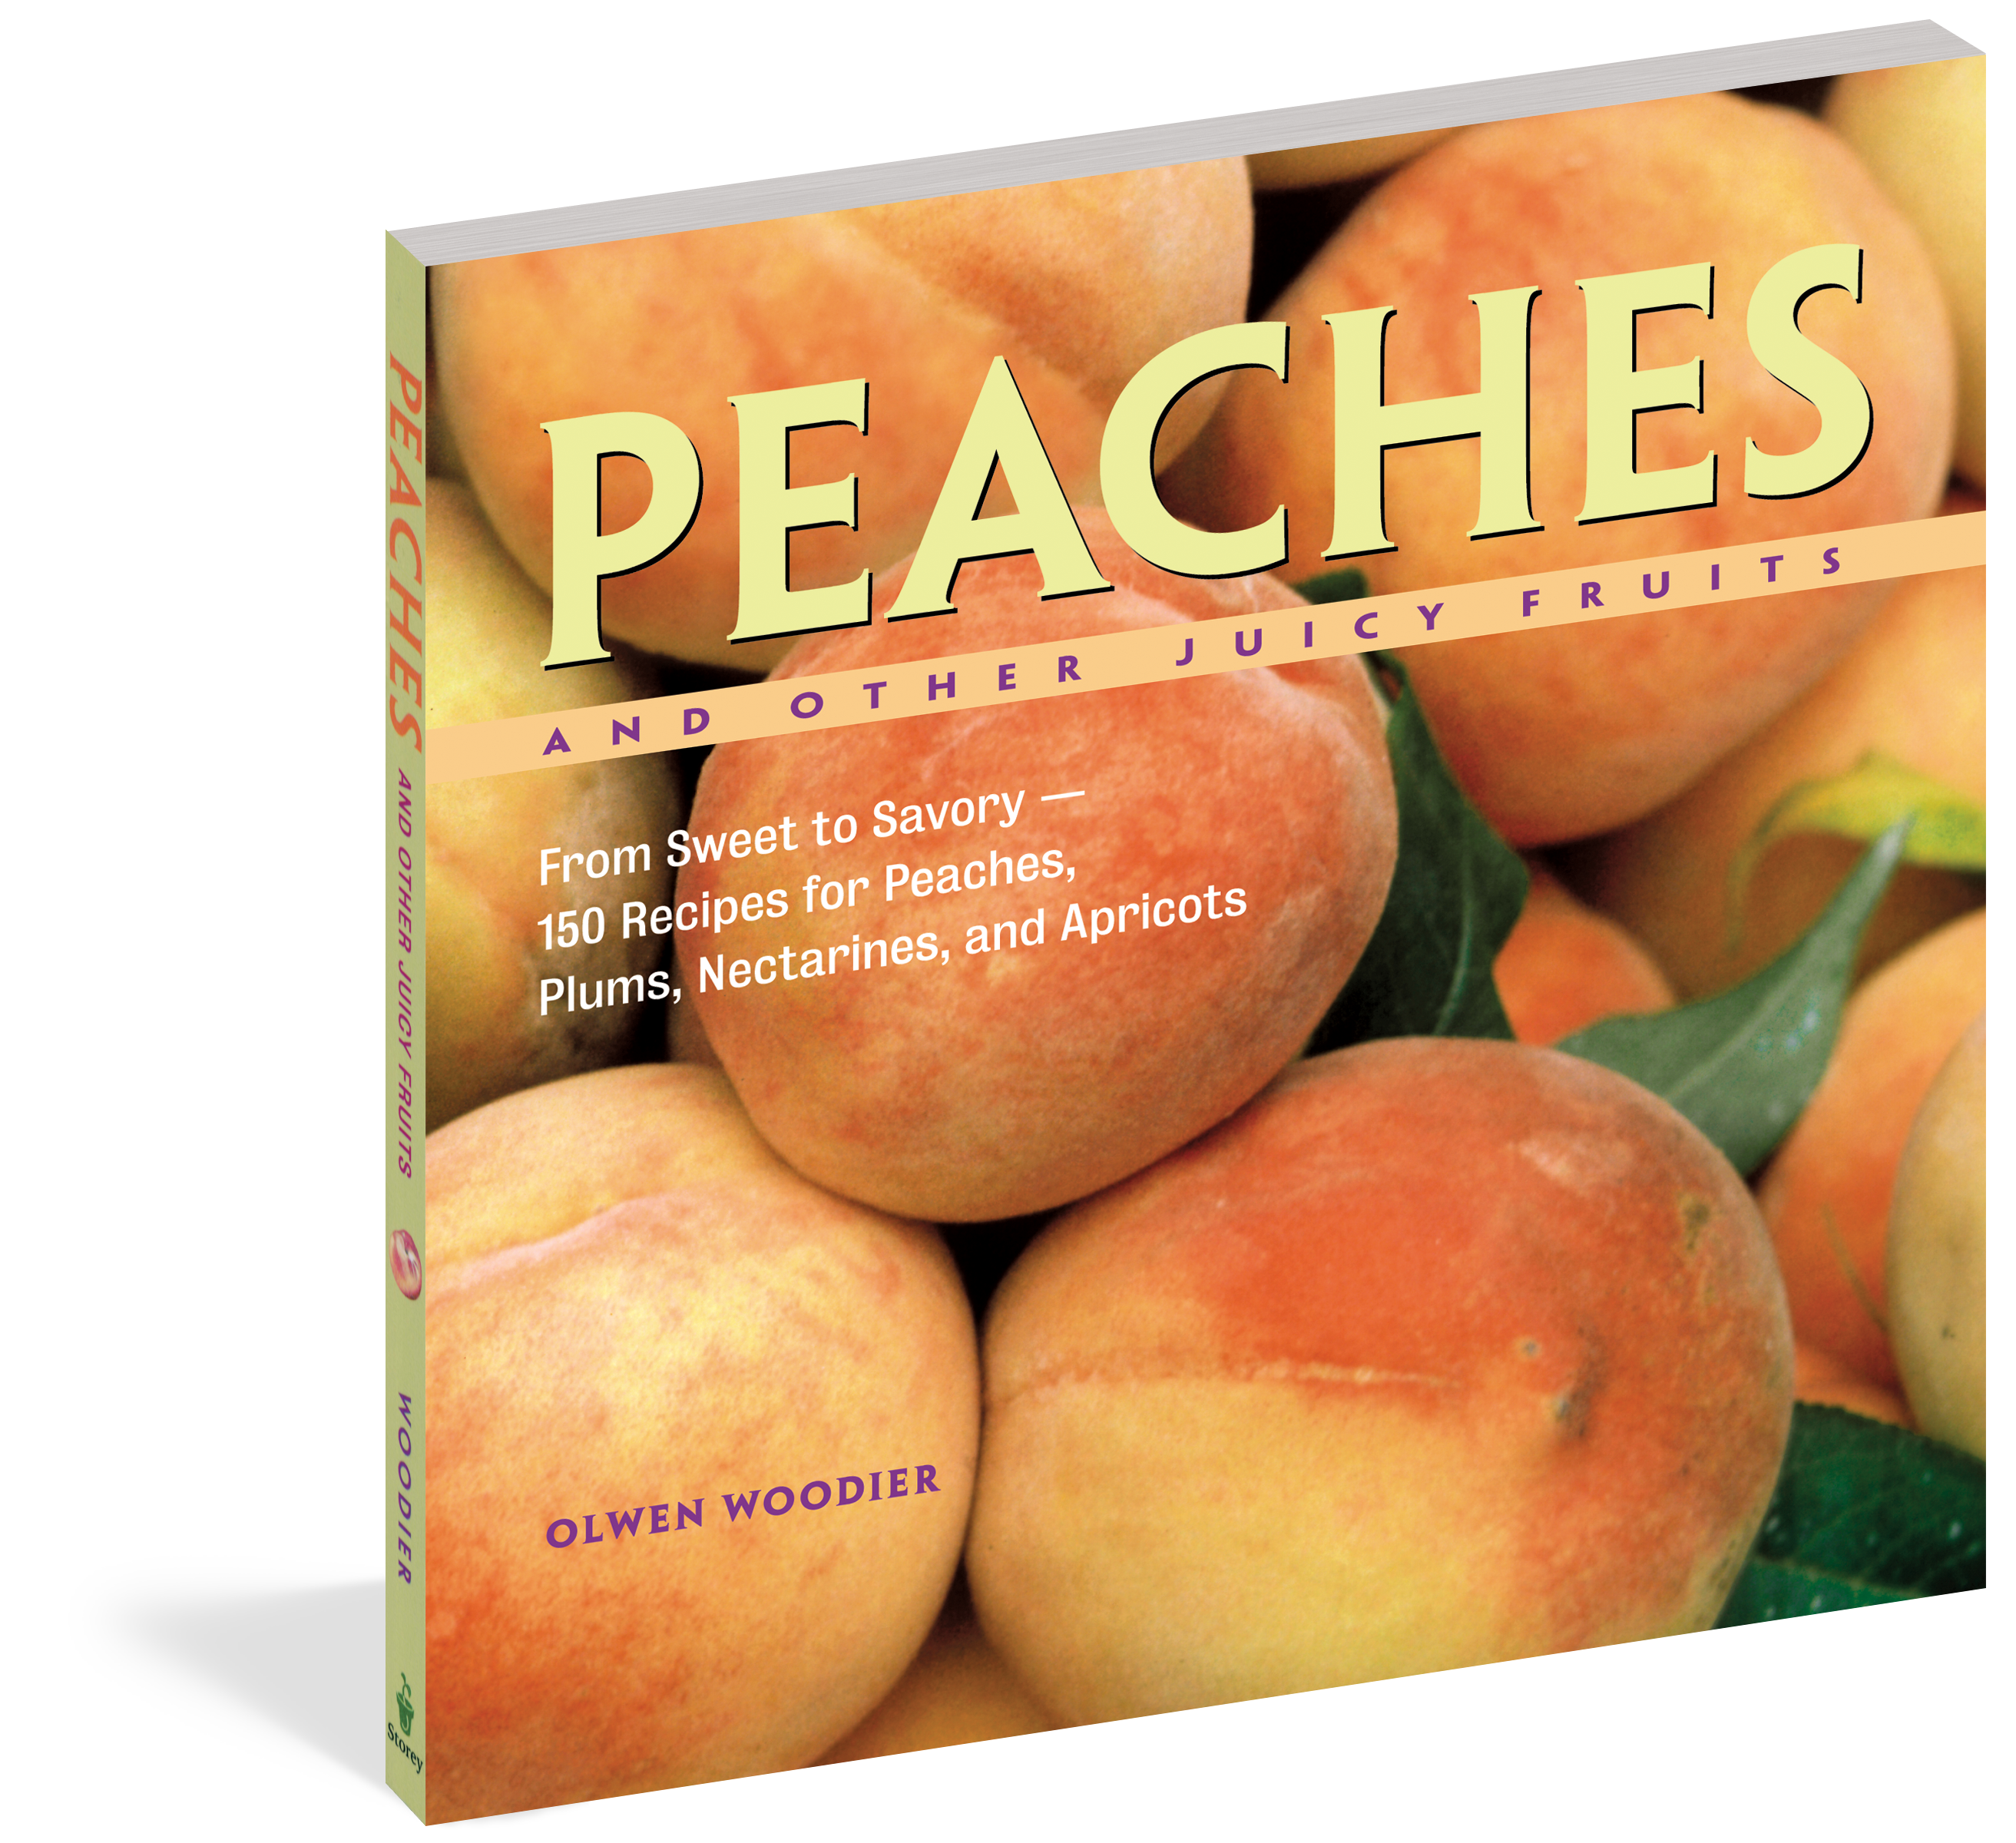 peaches and other juicy fruits workman publishing